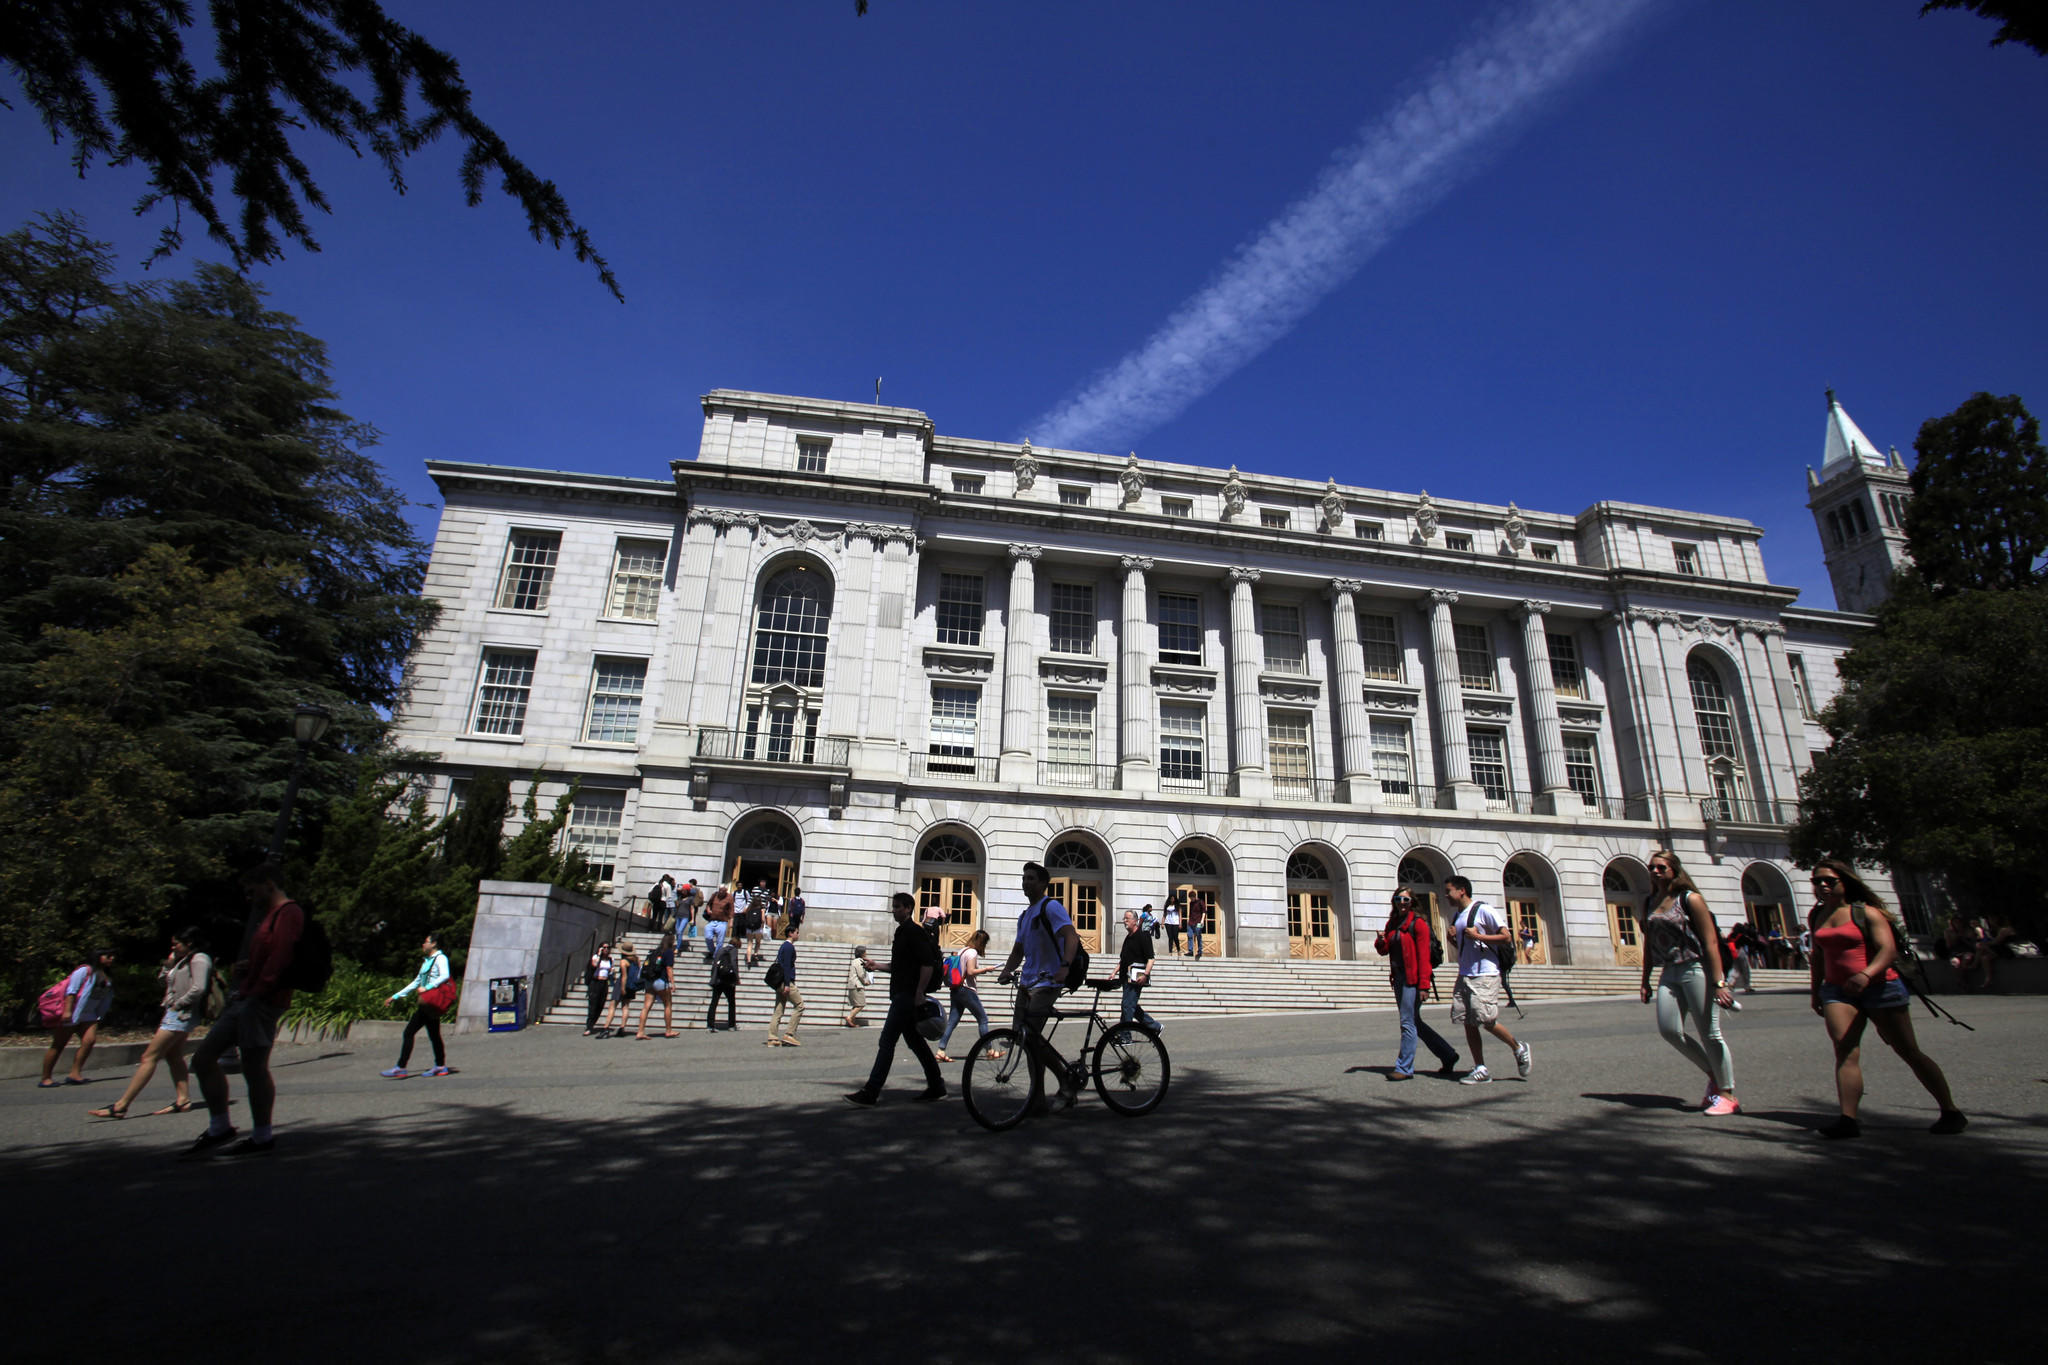 UC Berkeley students walk in front of Wheeler Hall. Only 18.8% of state residents who applied were offered a spot at Berkeley this year. Last year the rate was 21.4%.